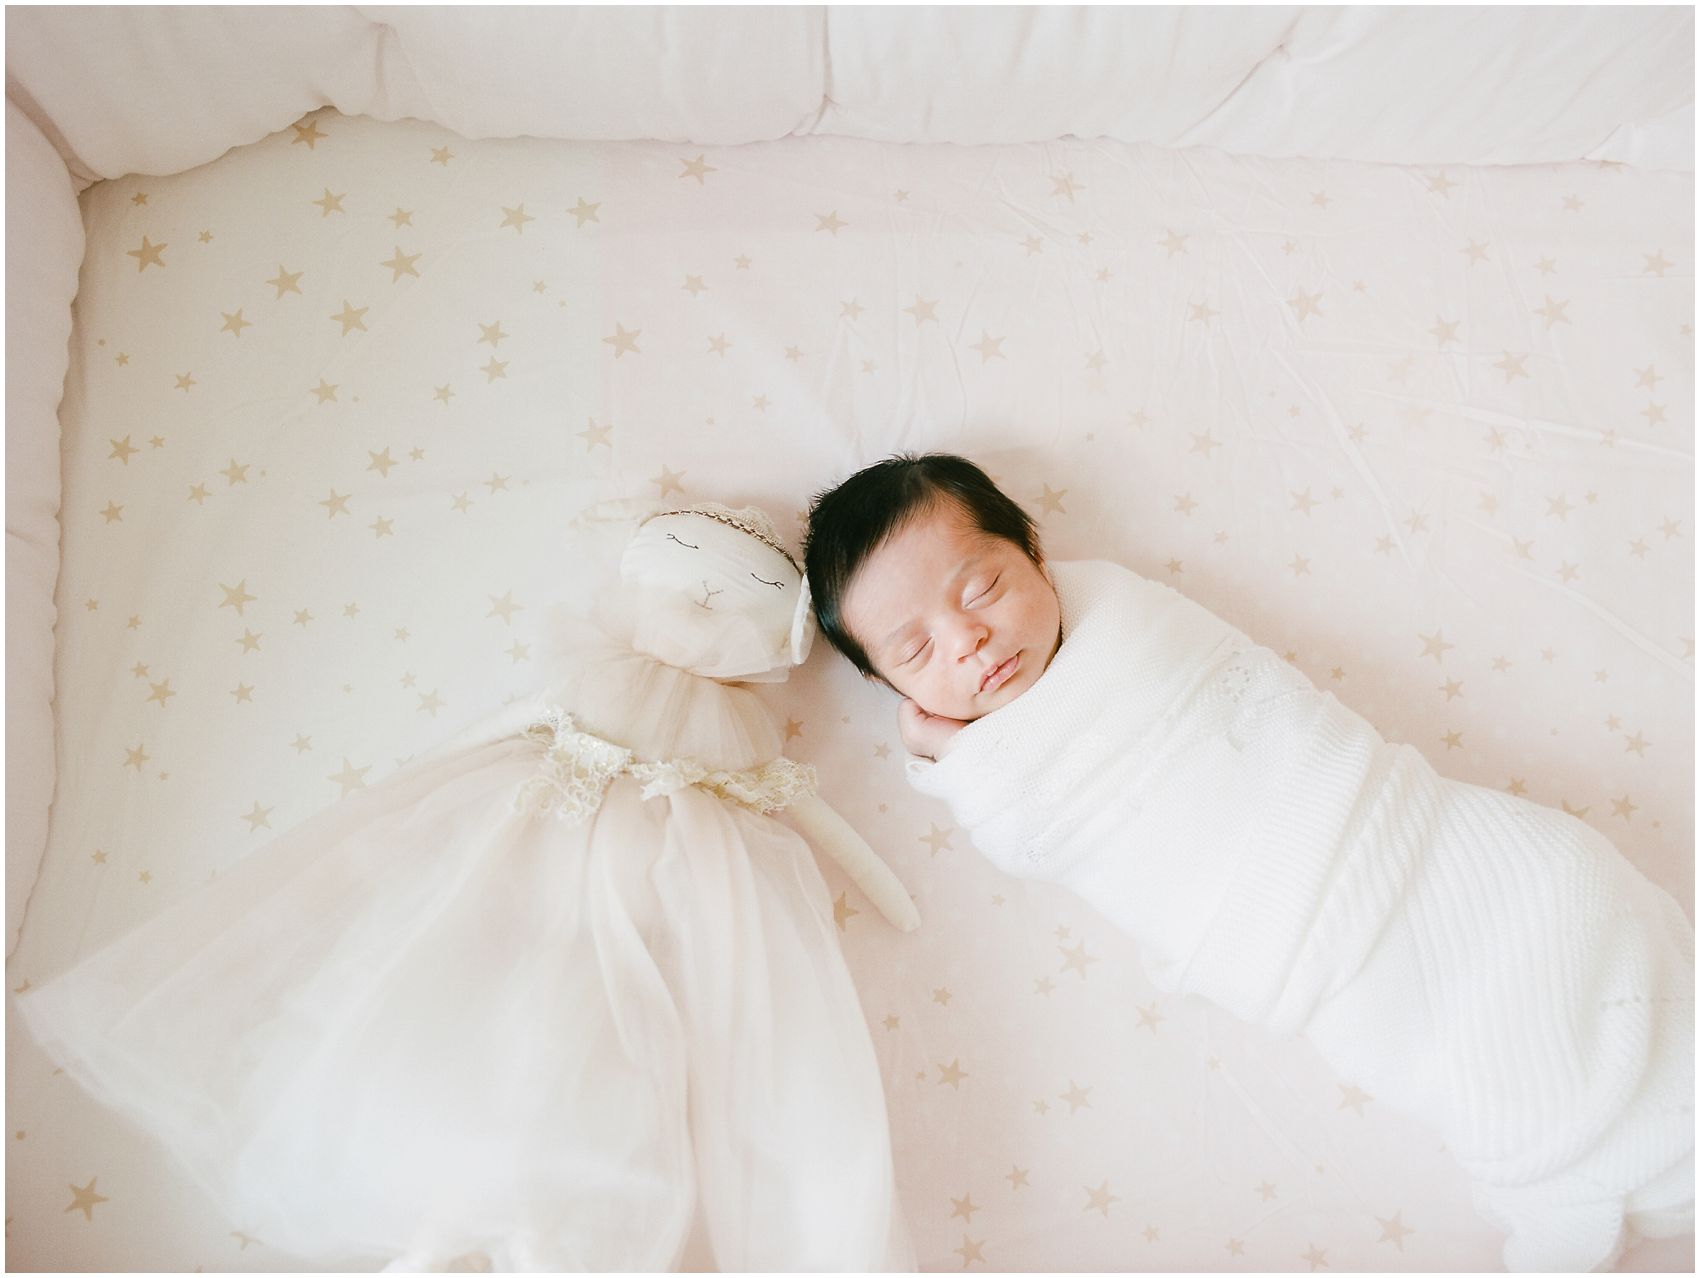 Newborn photographer Miriam Dubinsky shares indoor portraits in tight spaces with a baby girl is sleeping with her doll ballerina